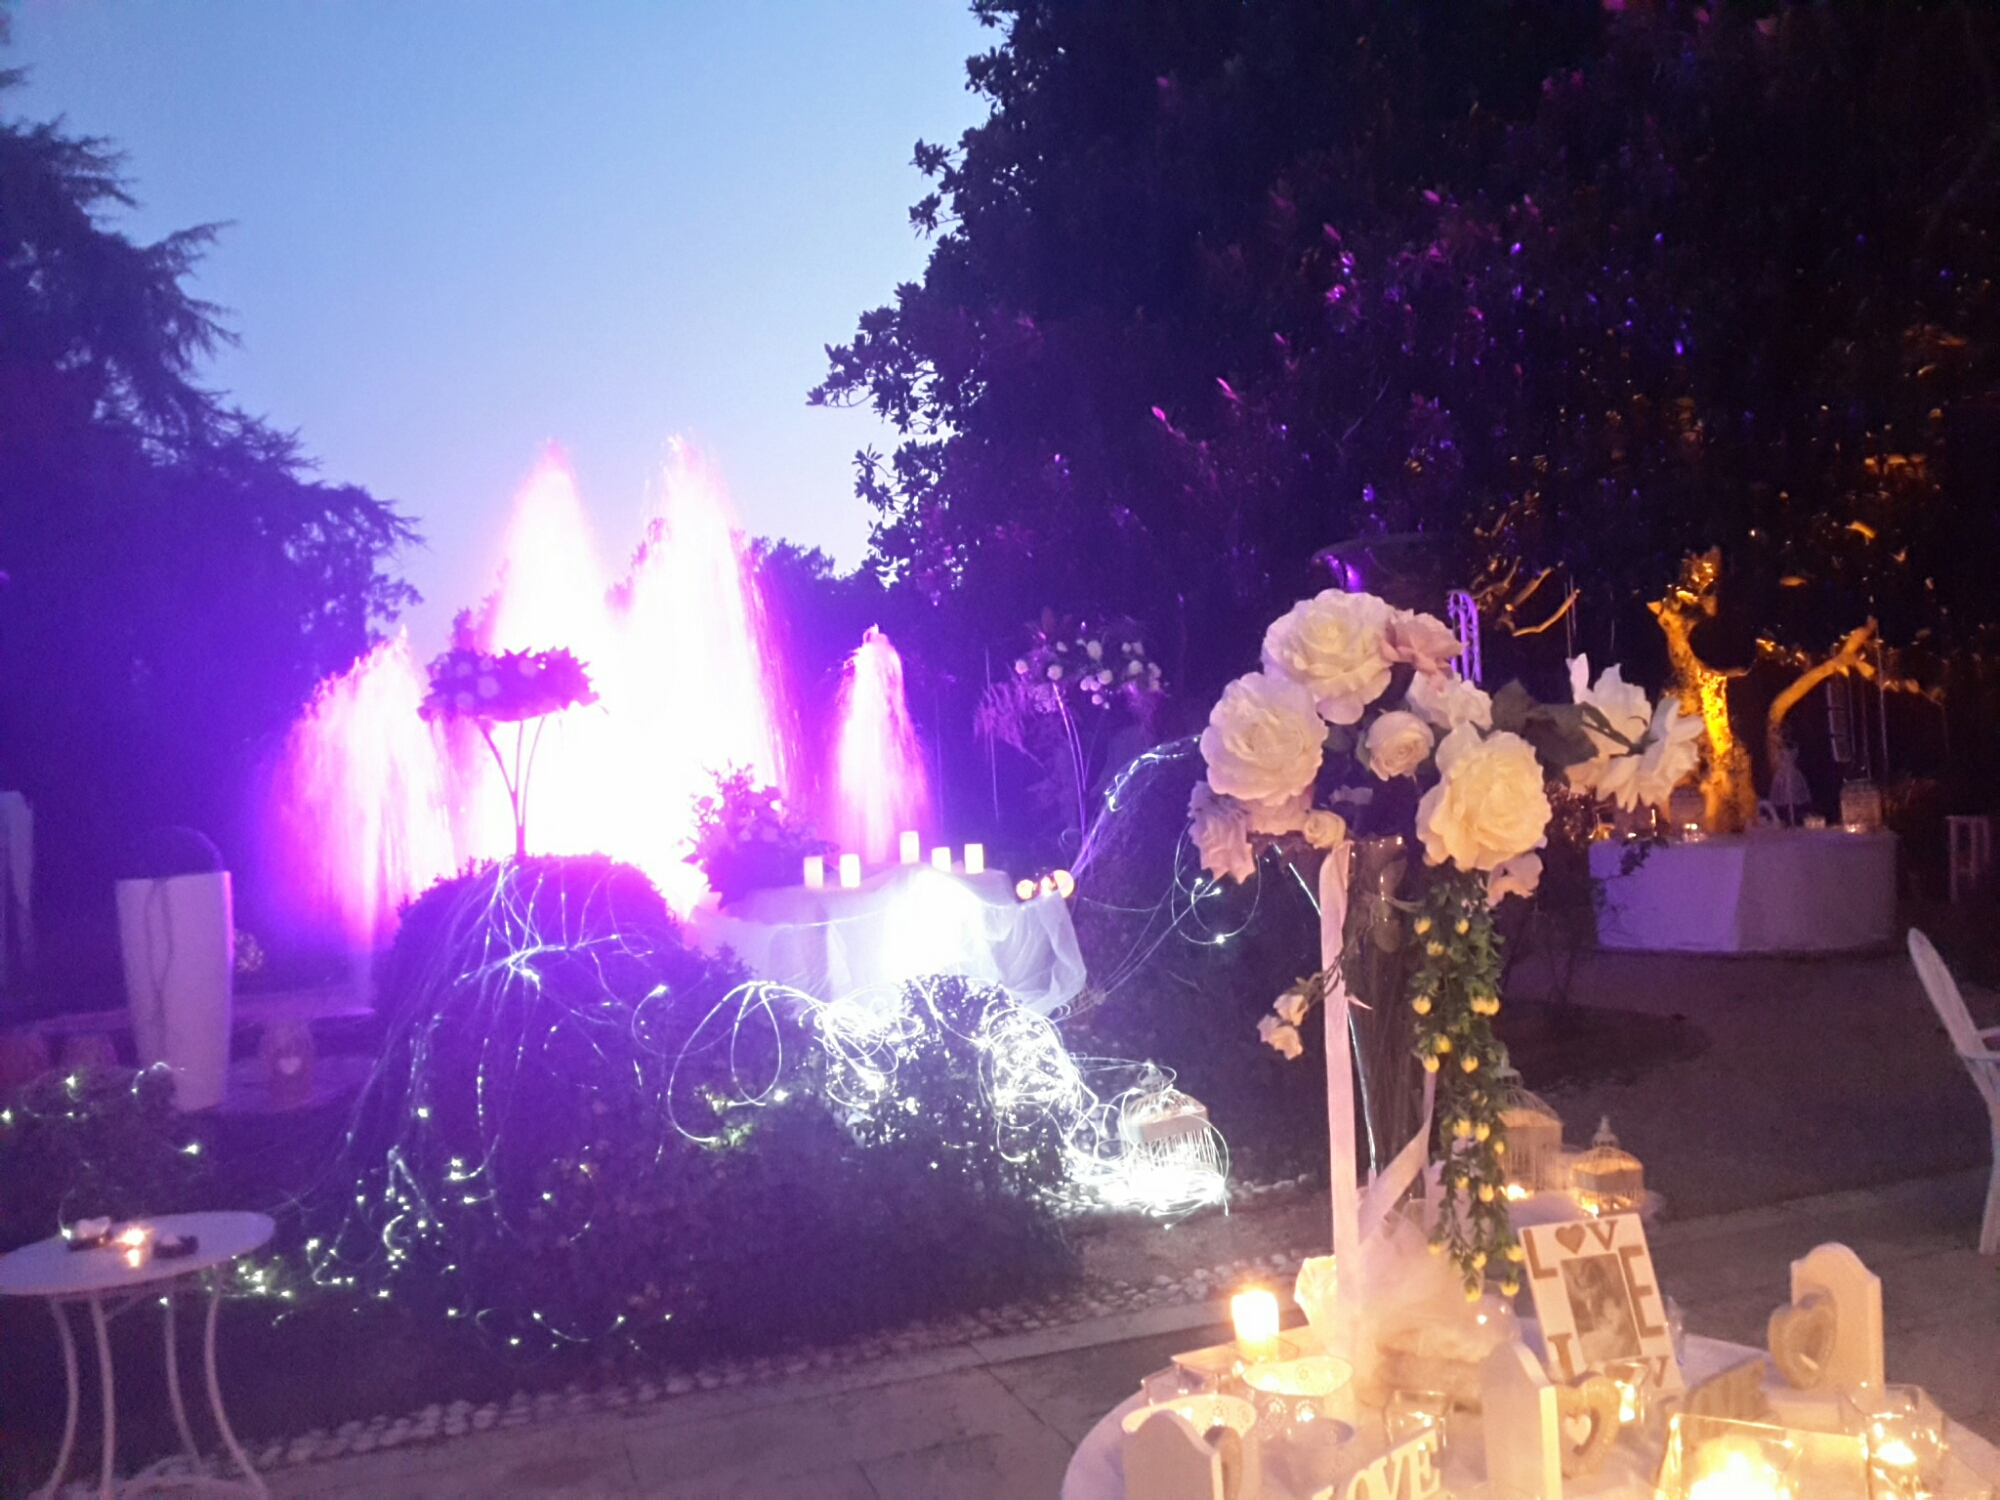 TEL 3914881688 VILLE MATRIMONI VENETO - LOCATION BEAUTIFUL